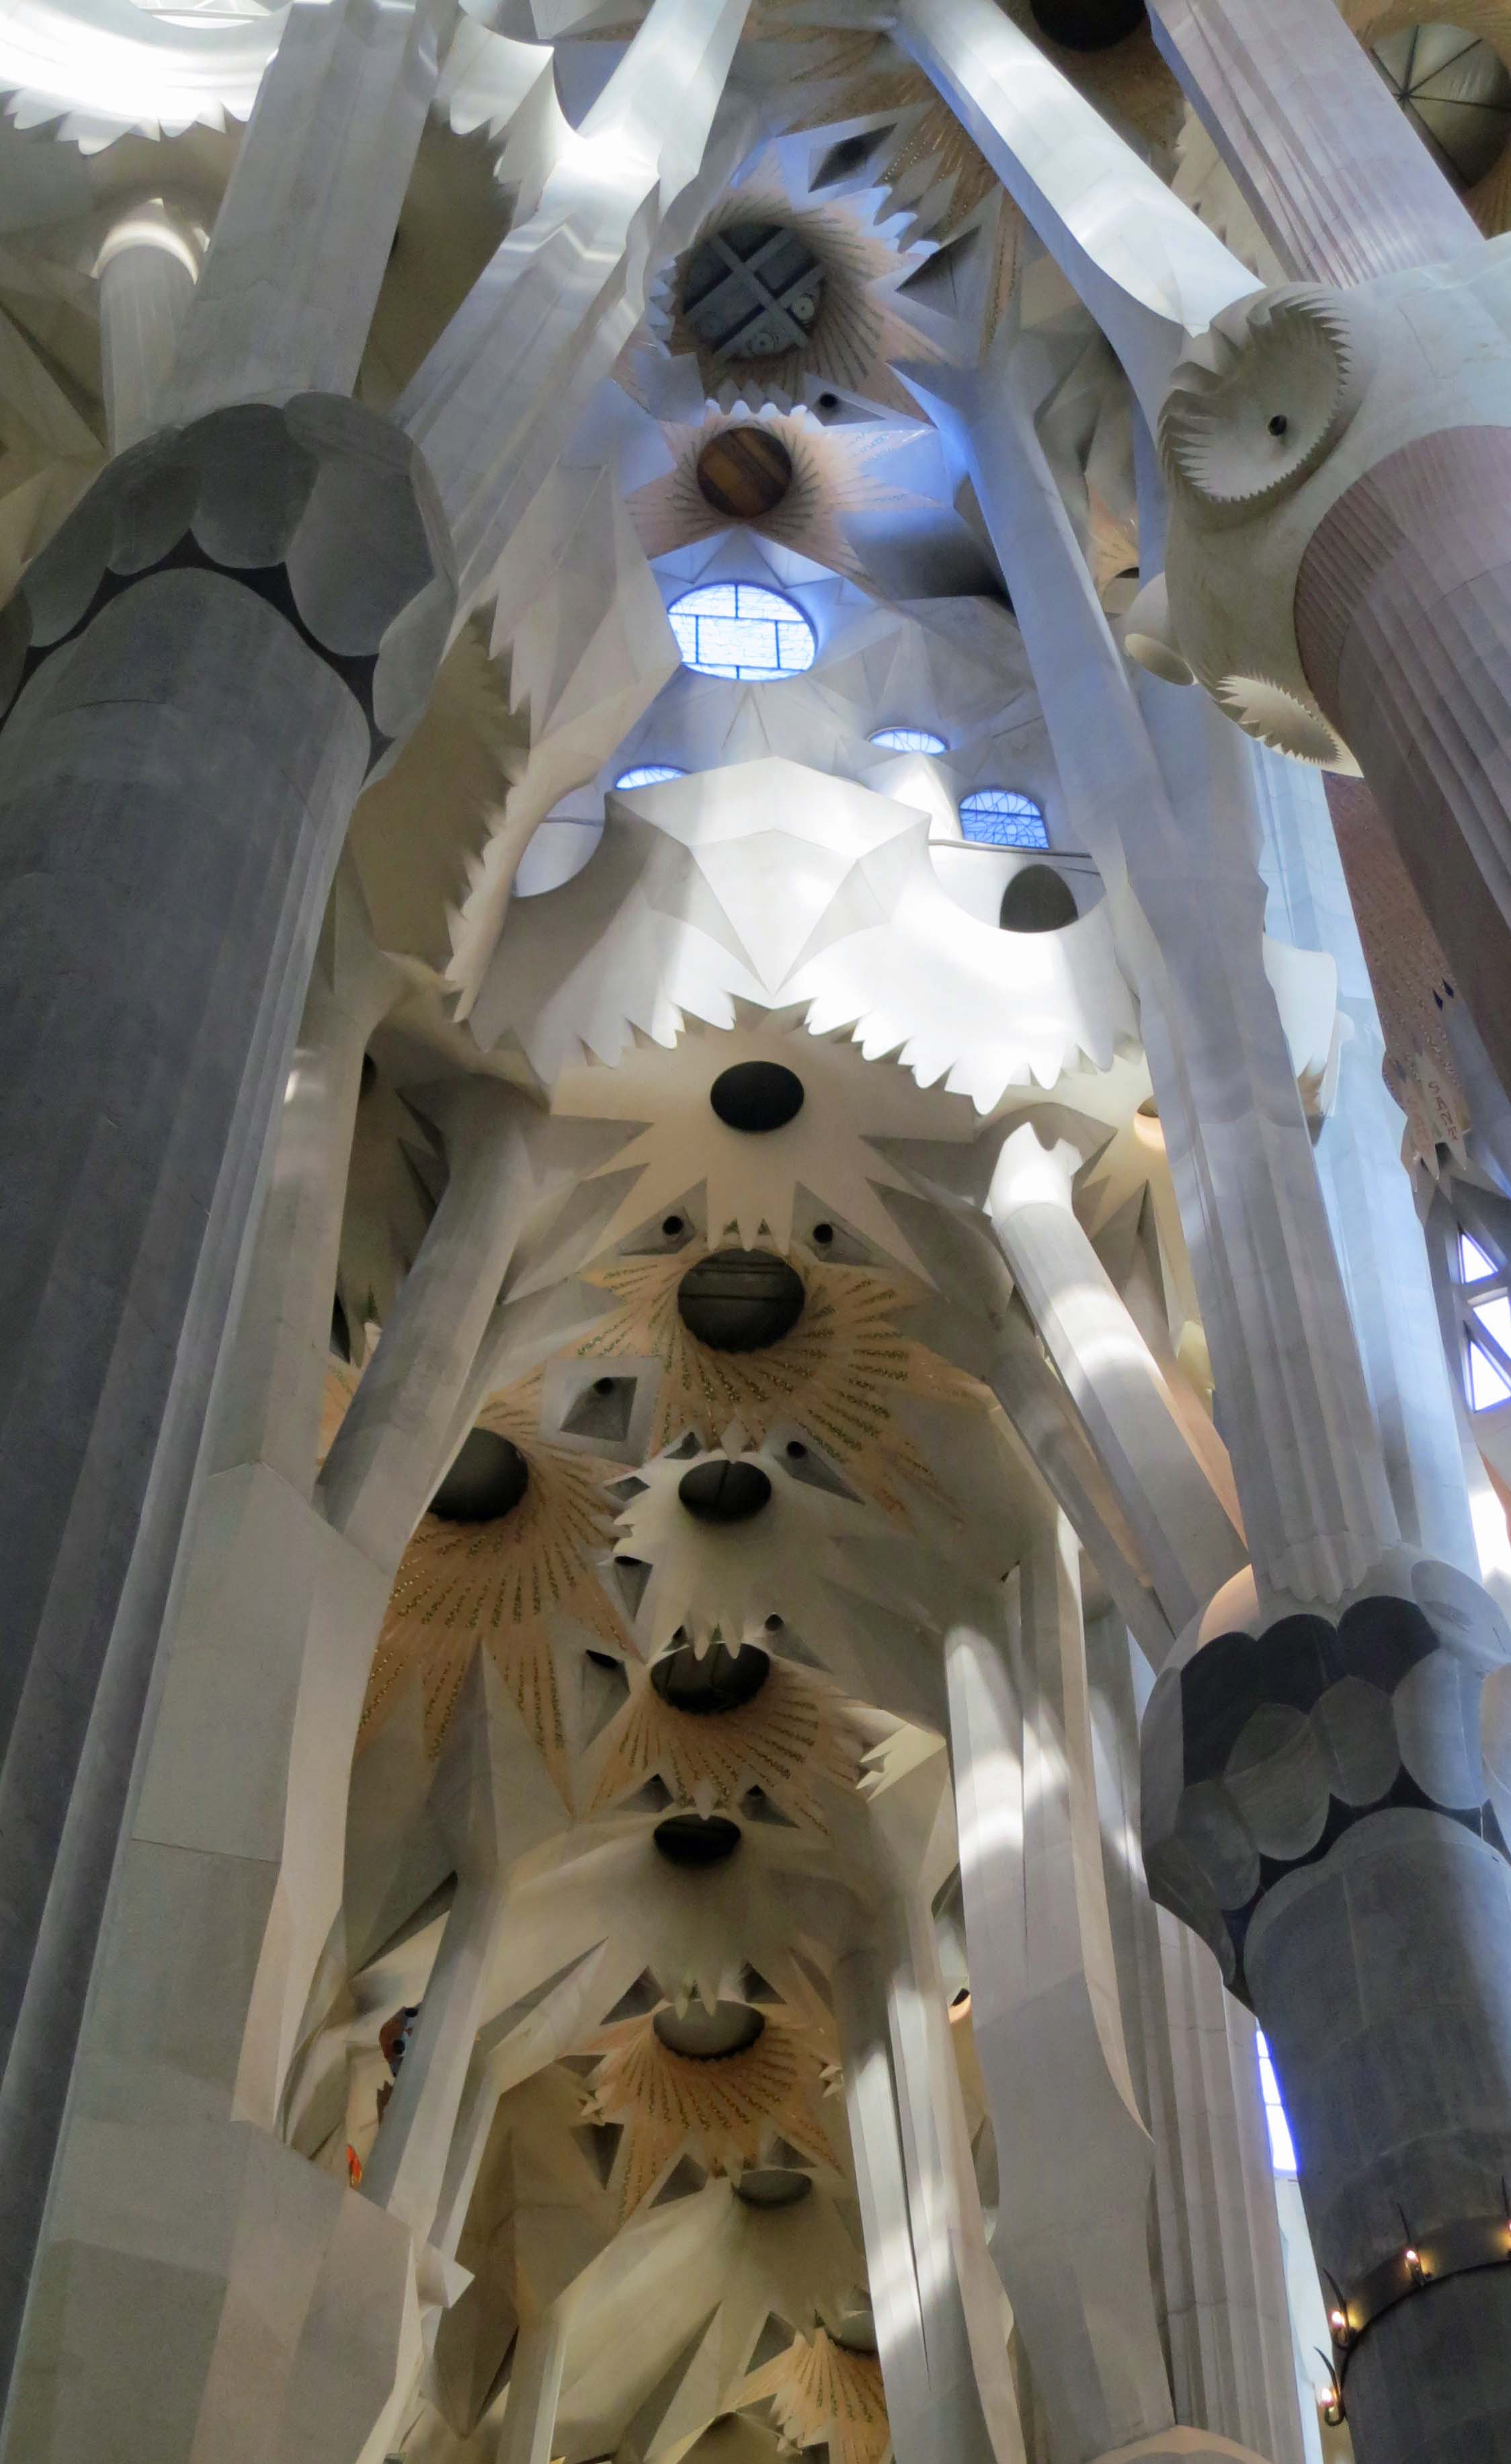 Celing of Sagrada Familia in Barcelona.